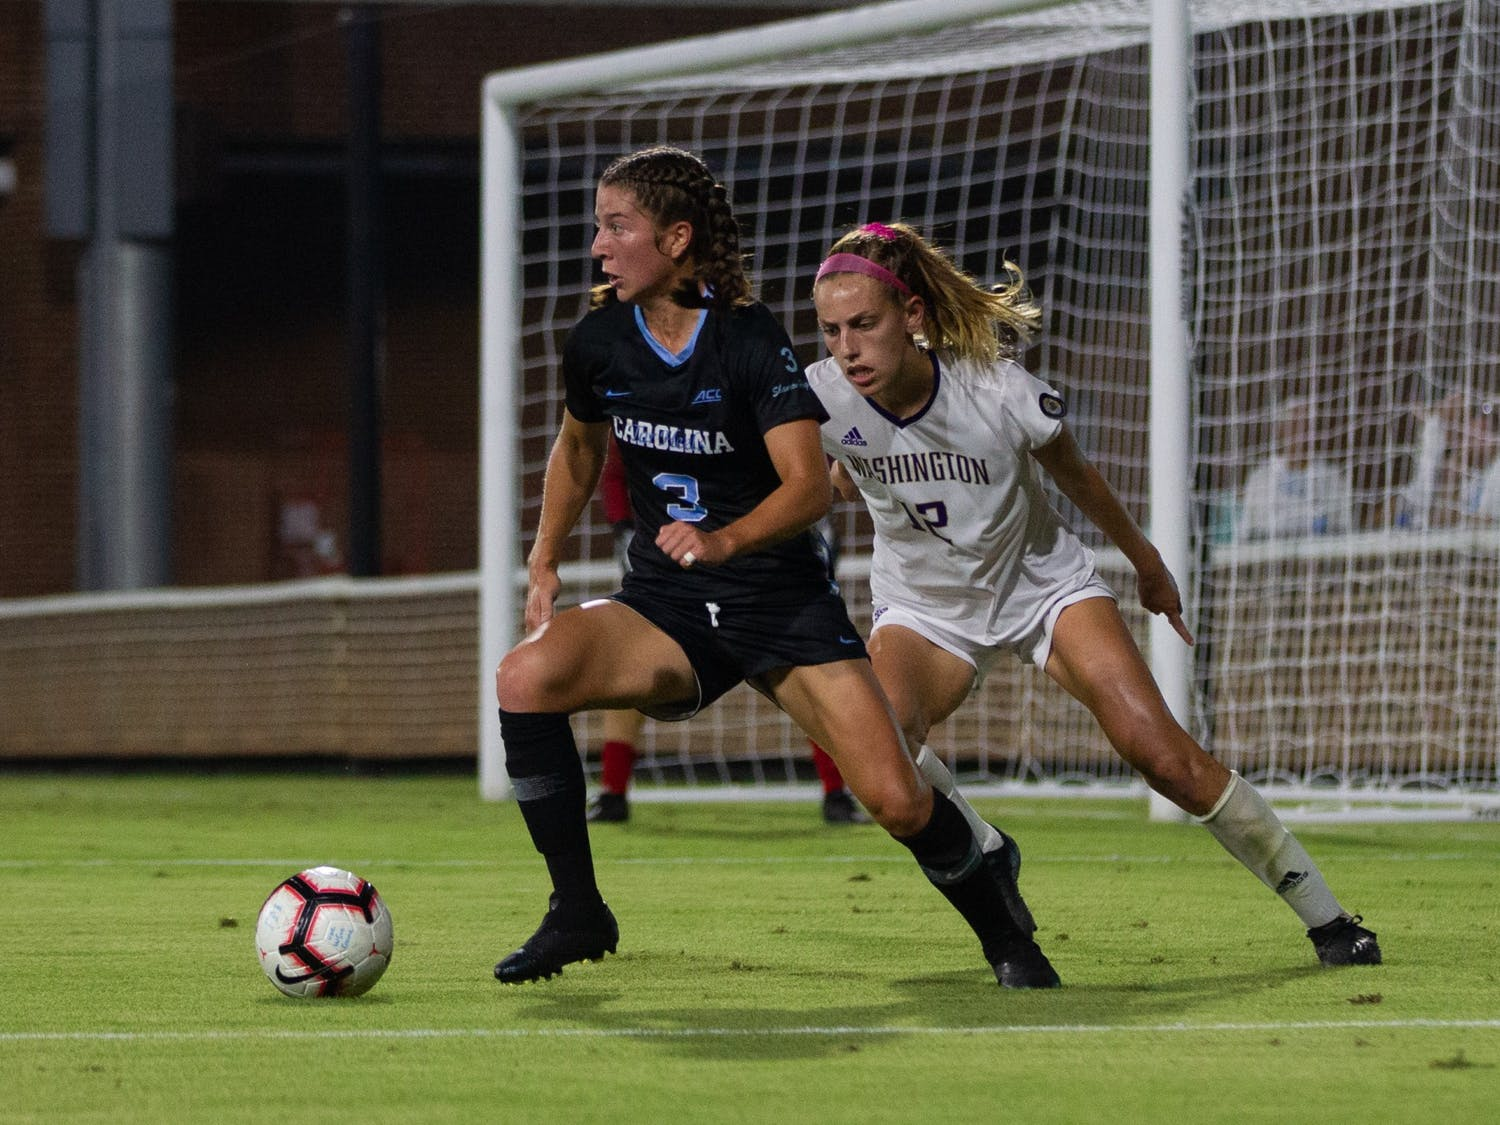 UNC first-year midfielder Ruby Grant (3) passes the ball during the matchup against Washington on Thursday, Aug. 19, 2021 at Dorrance Field.